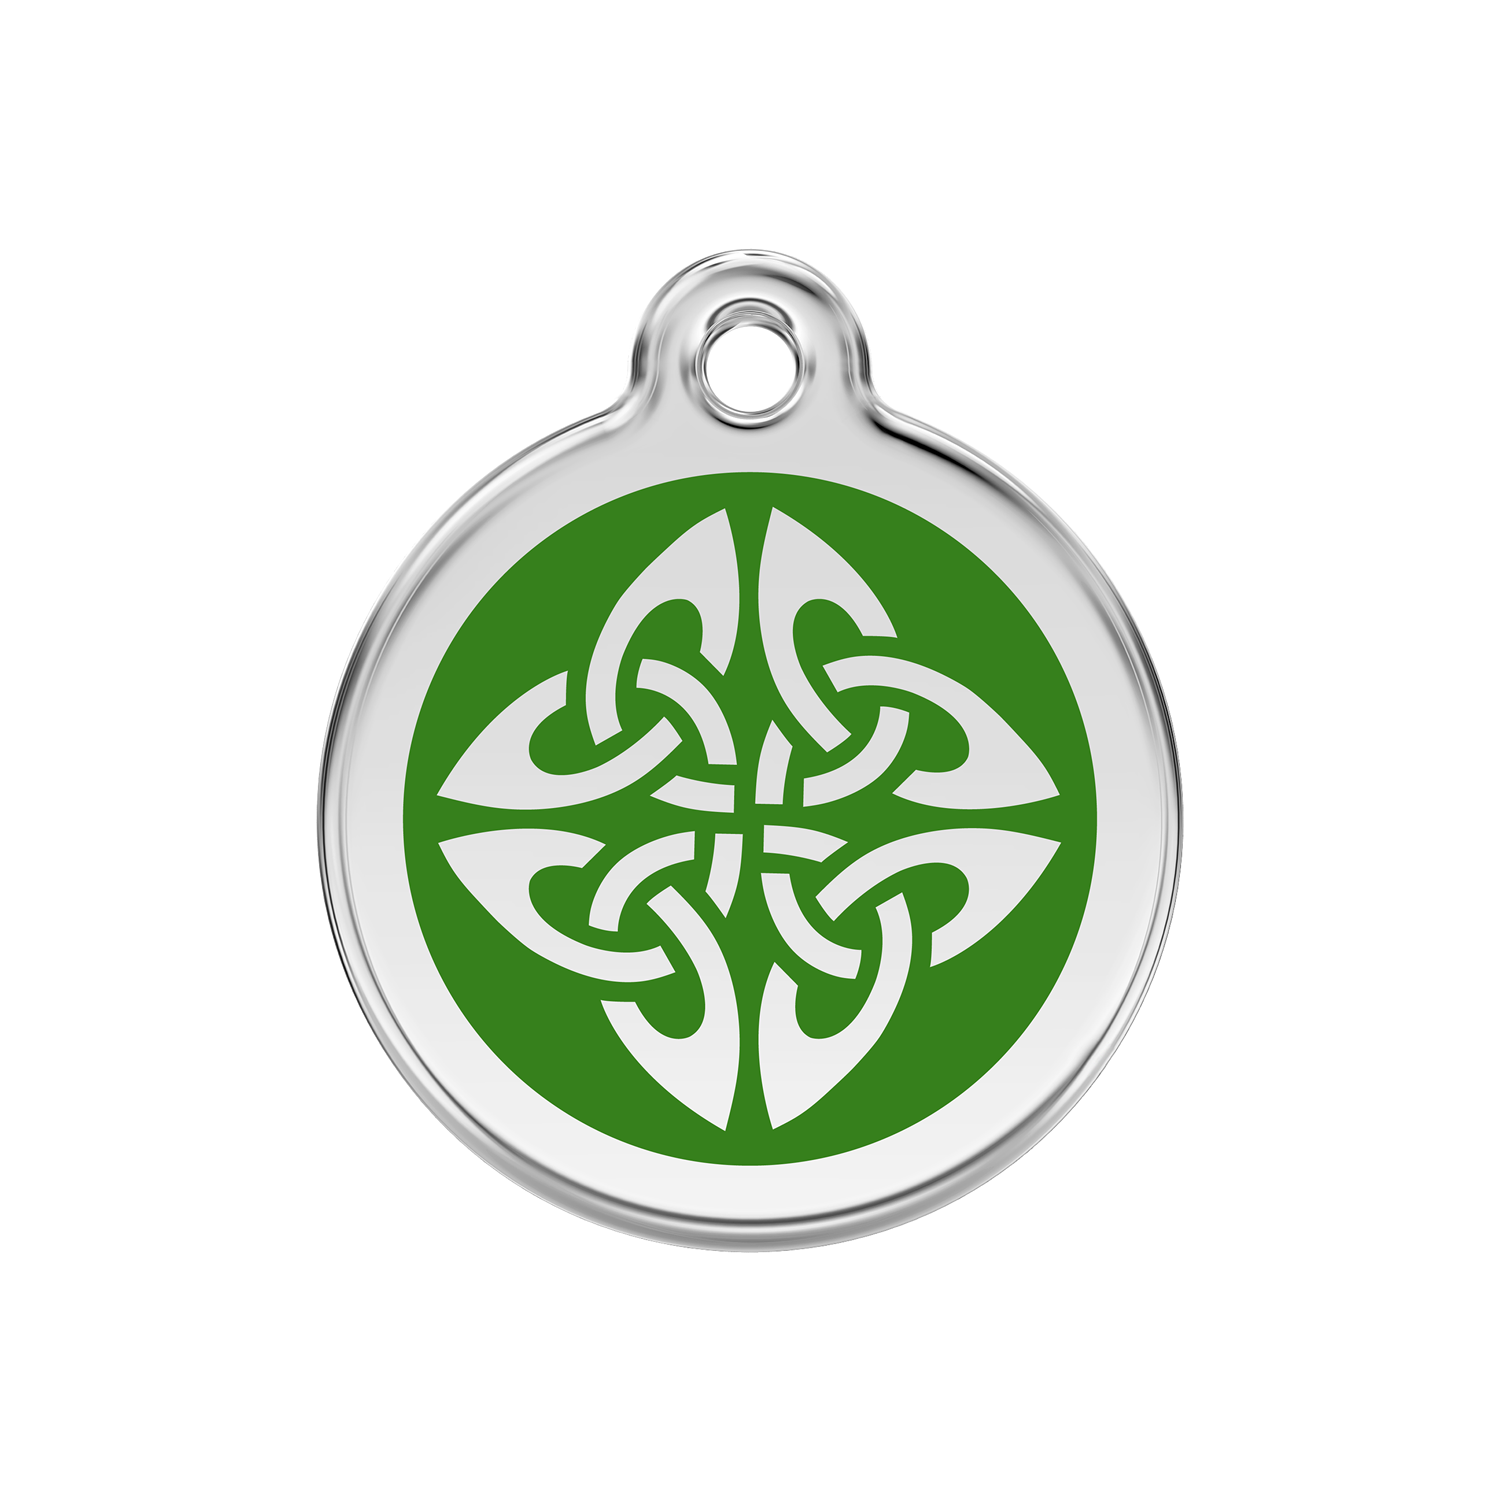 Green Tribal Arrows Medium Enamel & Stainless Steel Tag>